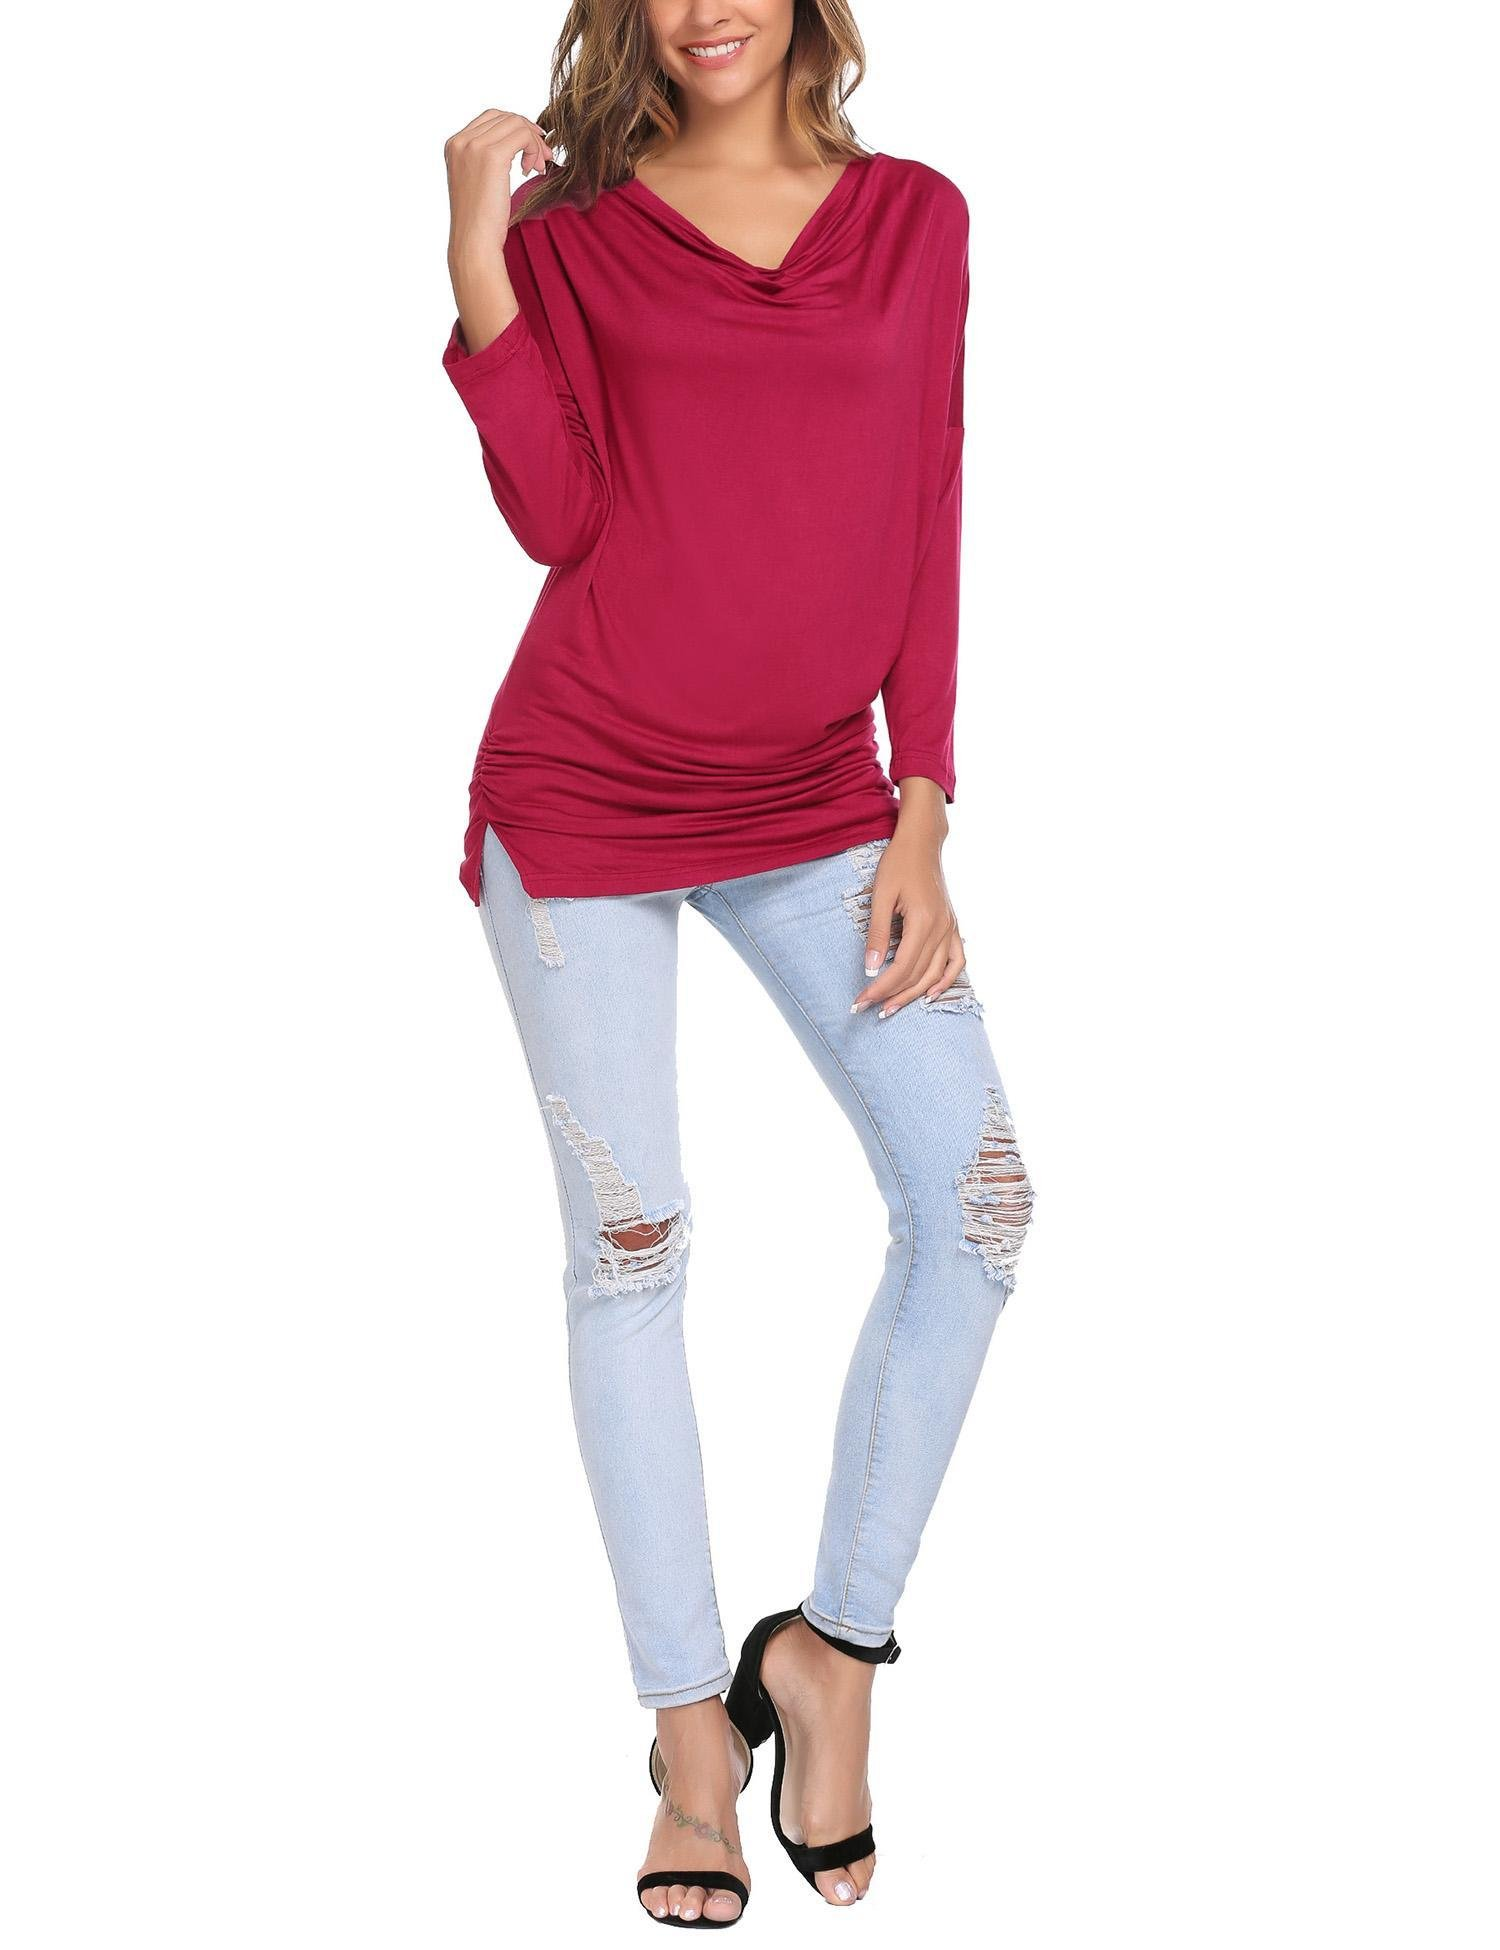 Zeagoo Womens Boat Neck Dolman Comfy Top Long Sleeve Tunic Solid Shirring Drape Jersey Tops Wine Red/M